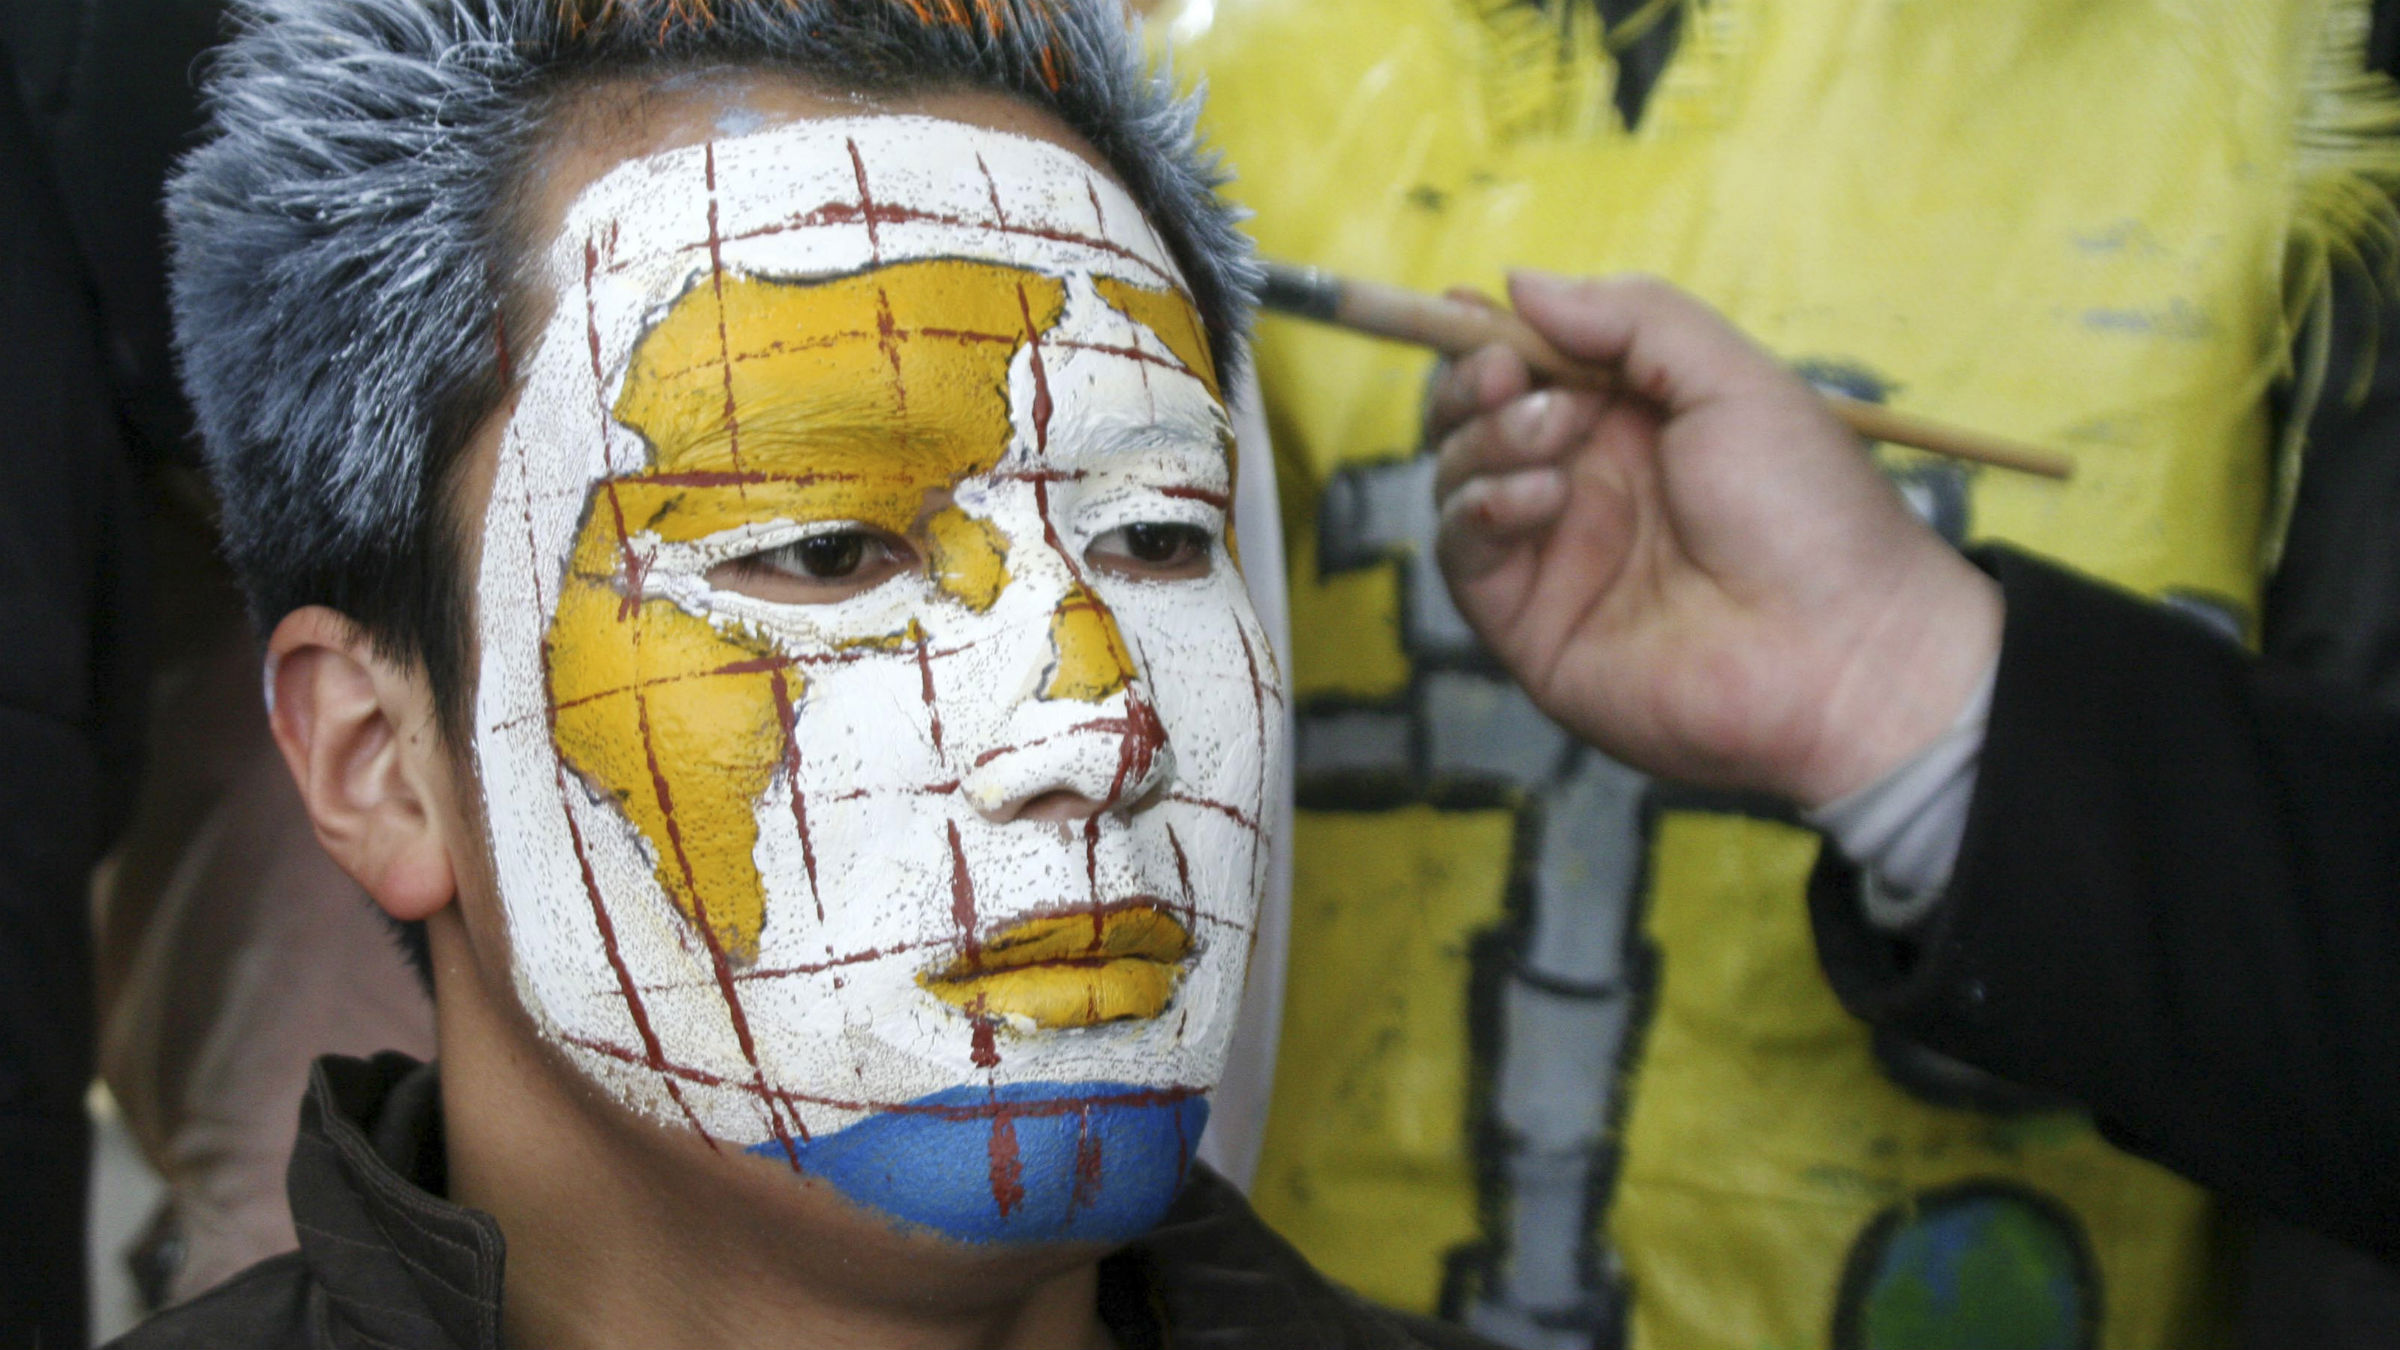 """A student gets a face painting called """"Thirsty Human"""" from his classmate during a campaign to mark the upcoming World Water Day at a vocational education school in Hanshan county, Anhui province, March 21, 2011. The yellow areas on the map in his face painting indicates dry places. March 22 is World Water Day."""